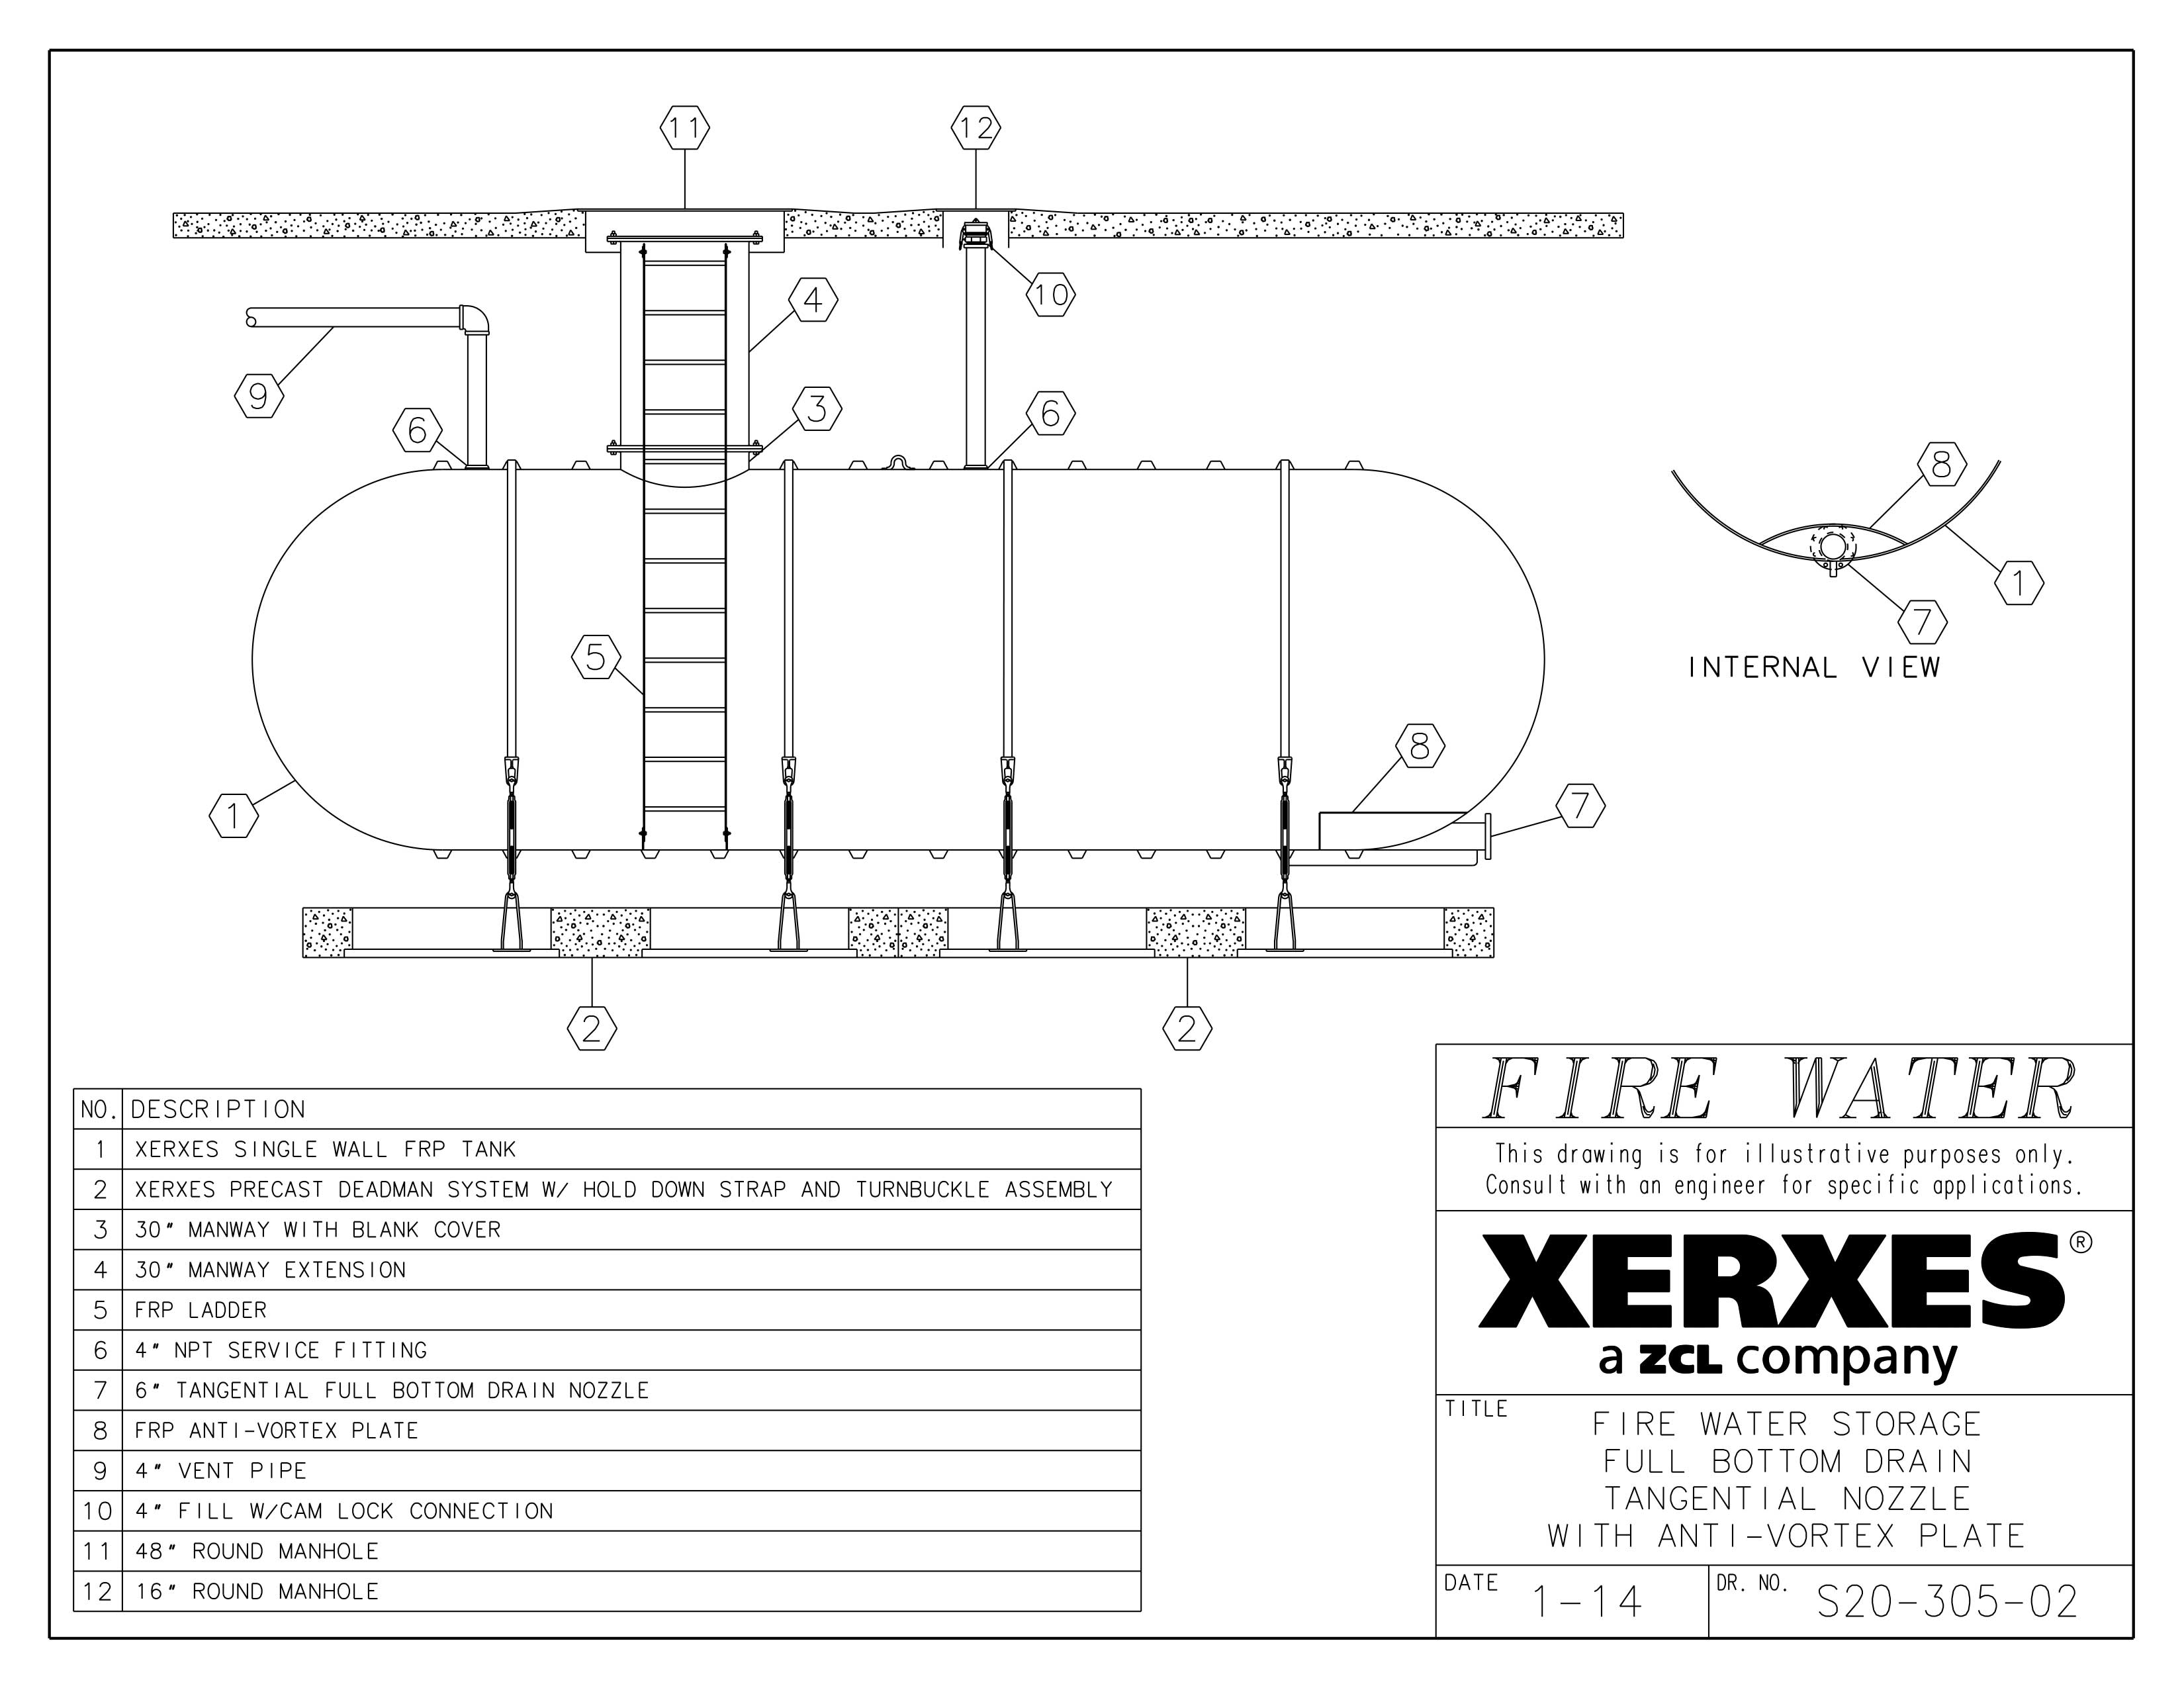 Xerxes Fire Protection Water Anti Vortex Acer Water Tanks